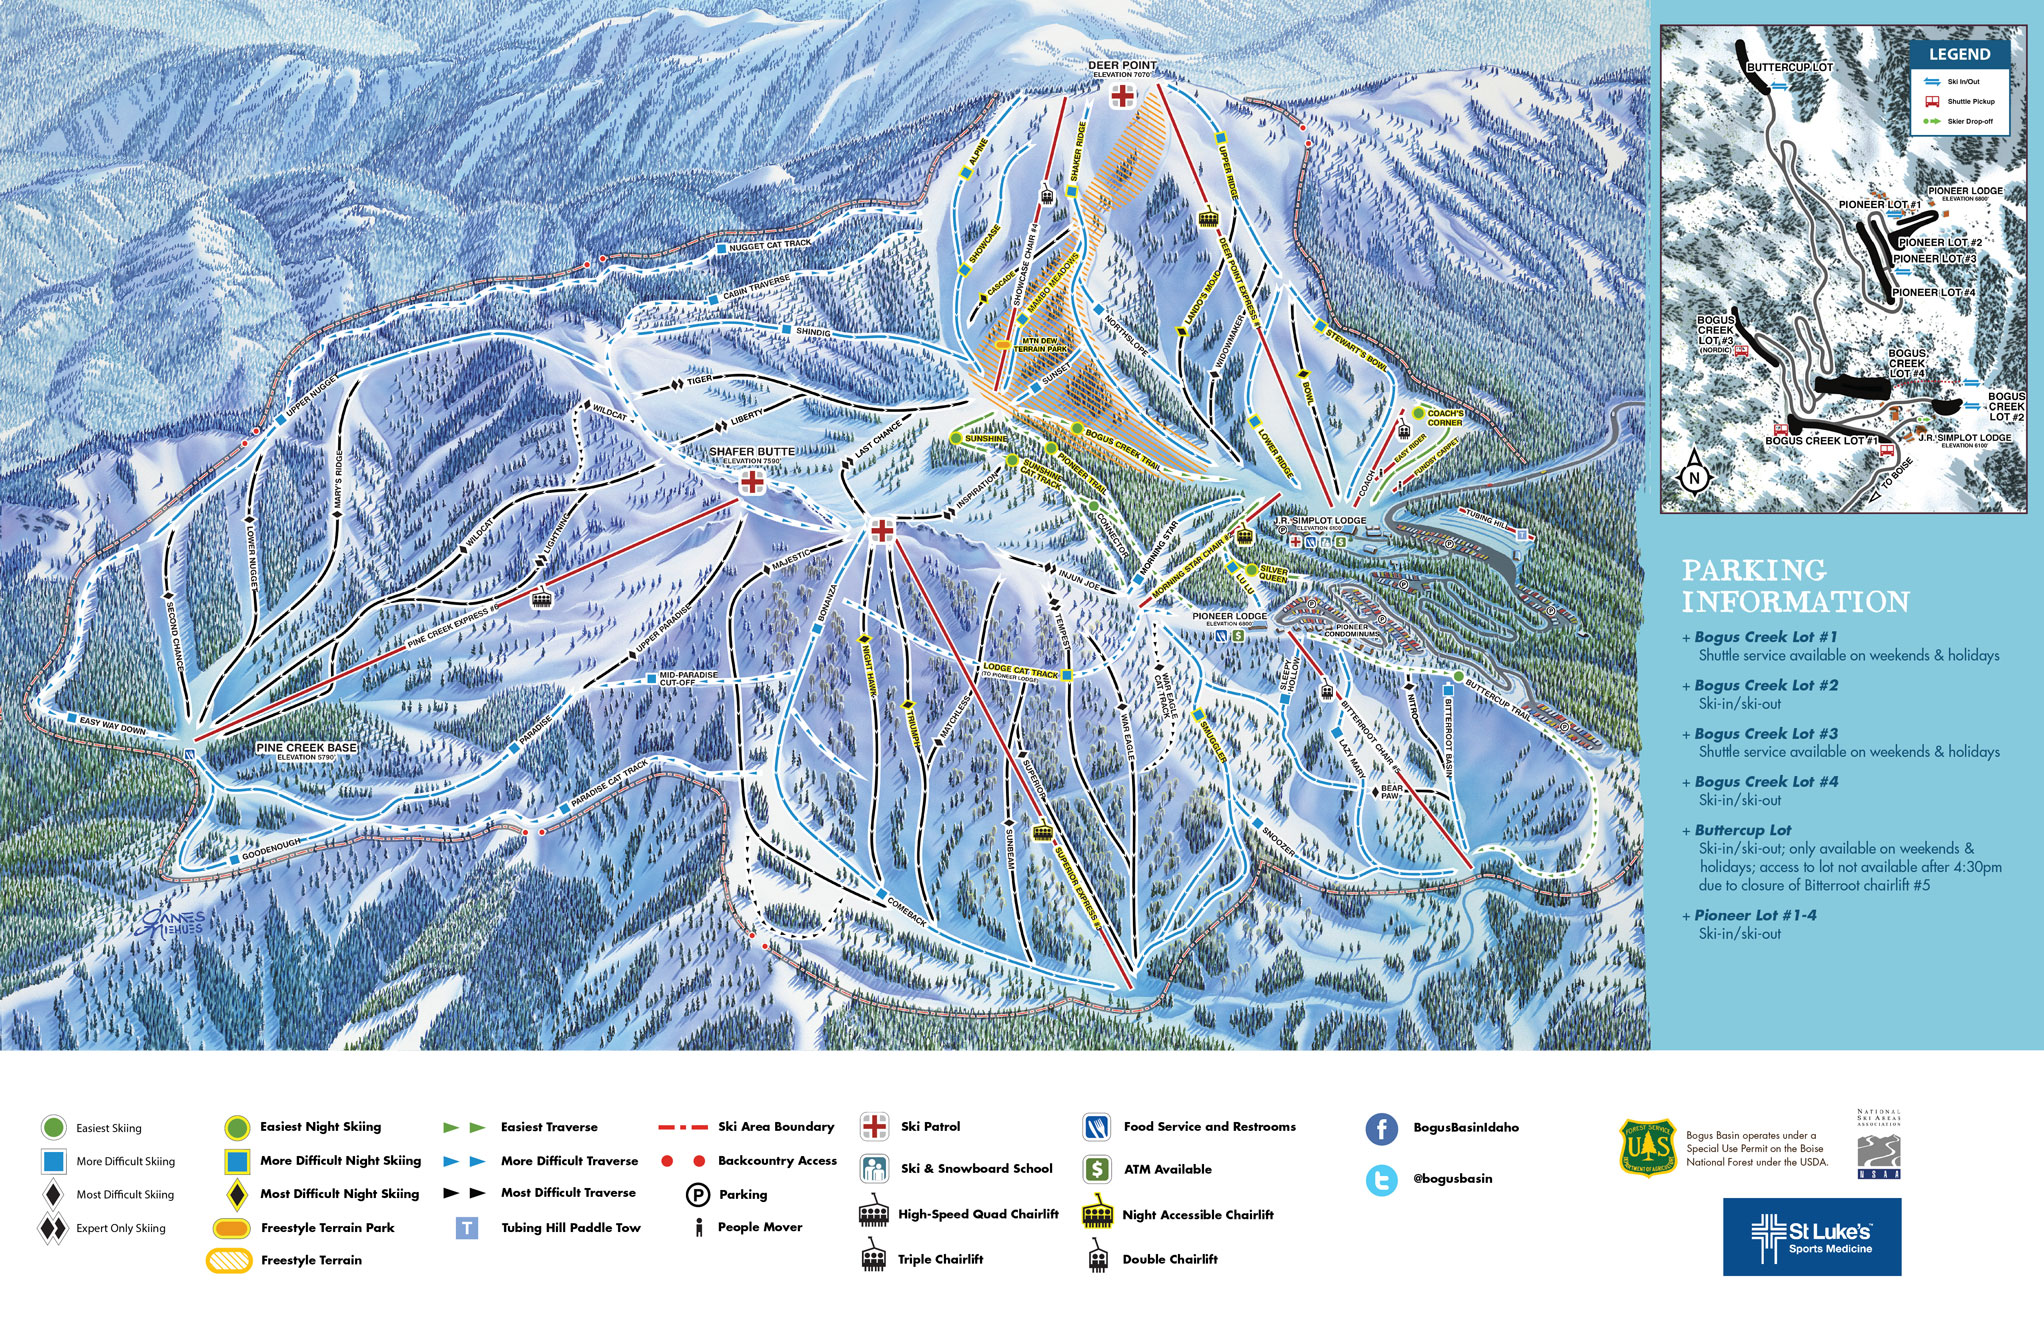 Bogus Basin Piste / Trail Map